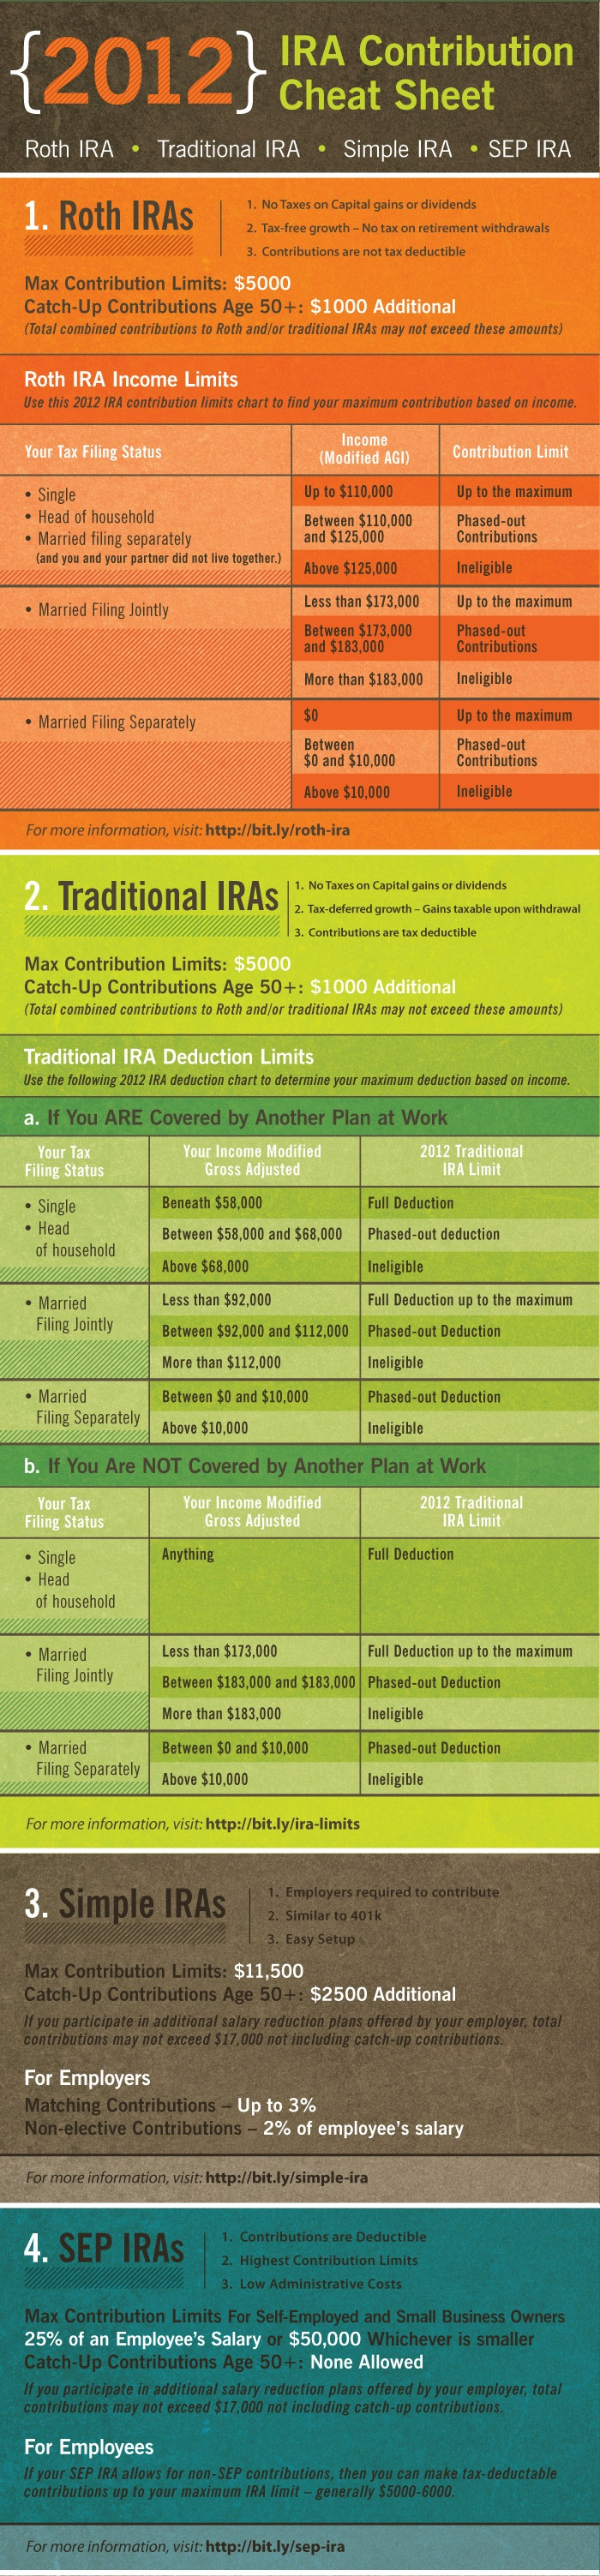 Ultimate 2012 IRA Cheat Sheet    Ready for 2012? The IRS changed many of the IRA contribution limits allowed for every type of account. Keep track of all the tax, income and contribution limits with this handy chart below.